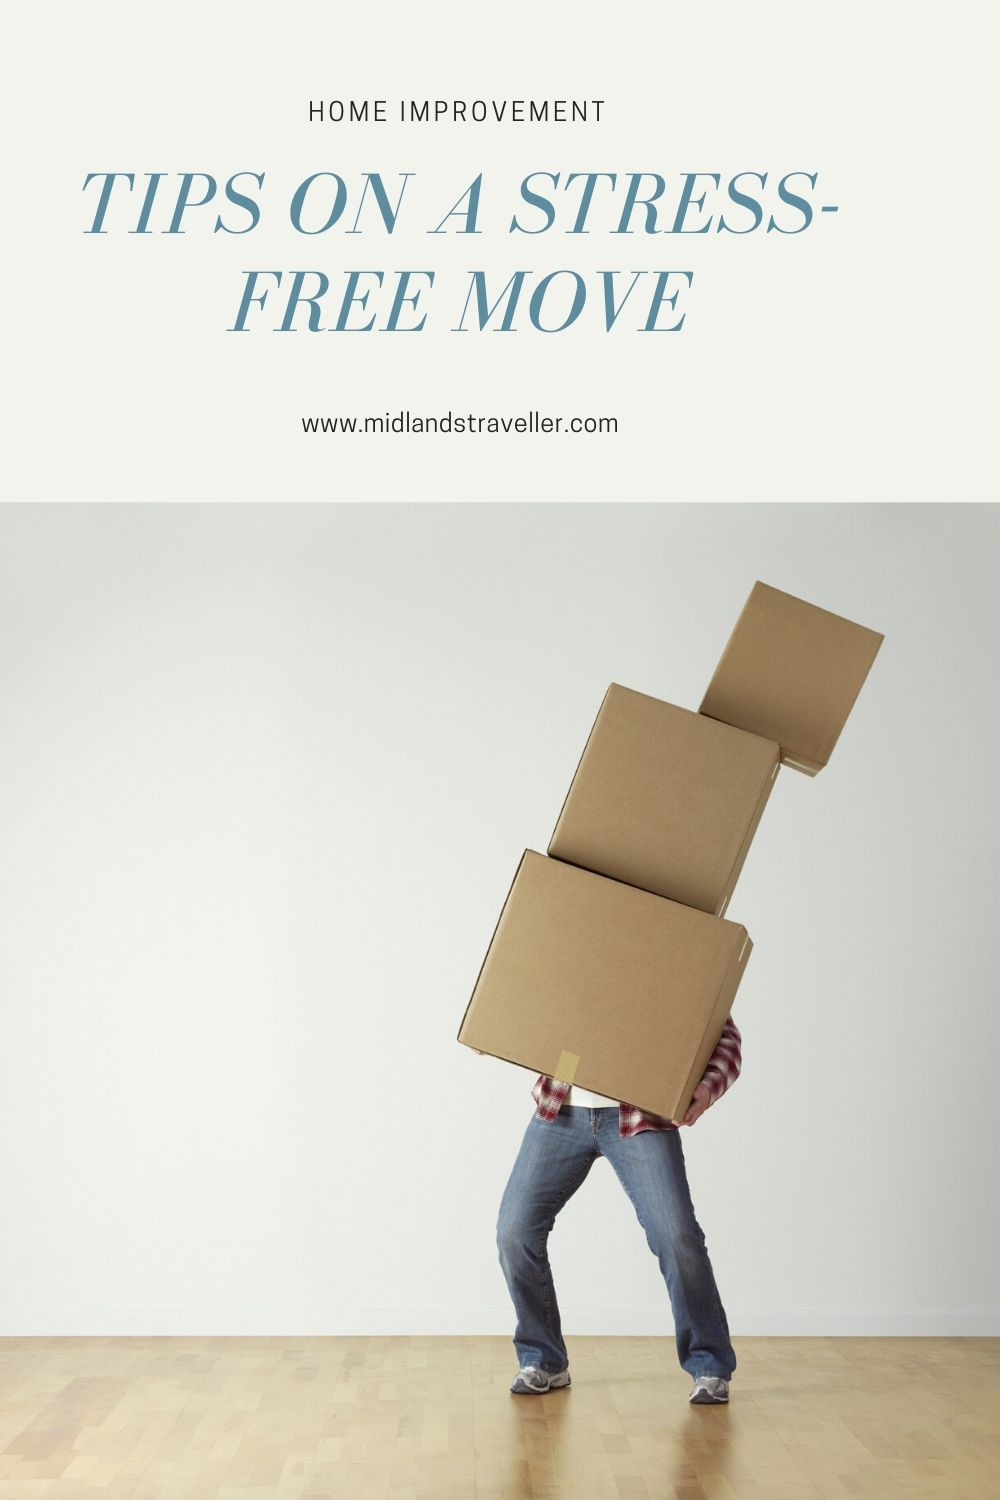 Starting a new life at a new home should be stress-free to everyone. However, I have never experienced smooth moving outs. And it is probably due to the fact, I never plan it properly. So, here are some tips that I will start following when I have a new home. #movinghouses #business #removalcompanies #stressfree #packing #mariekondo #movingout